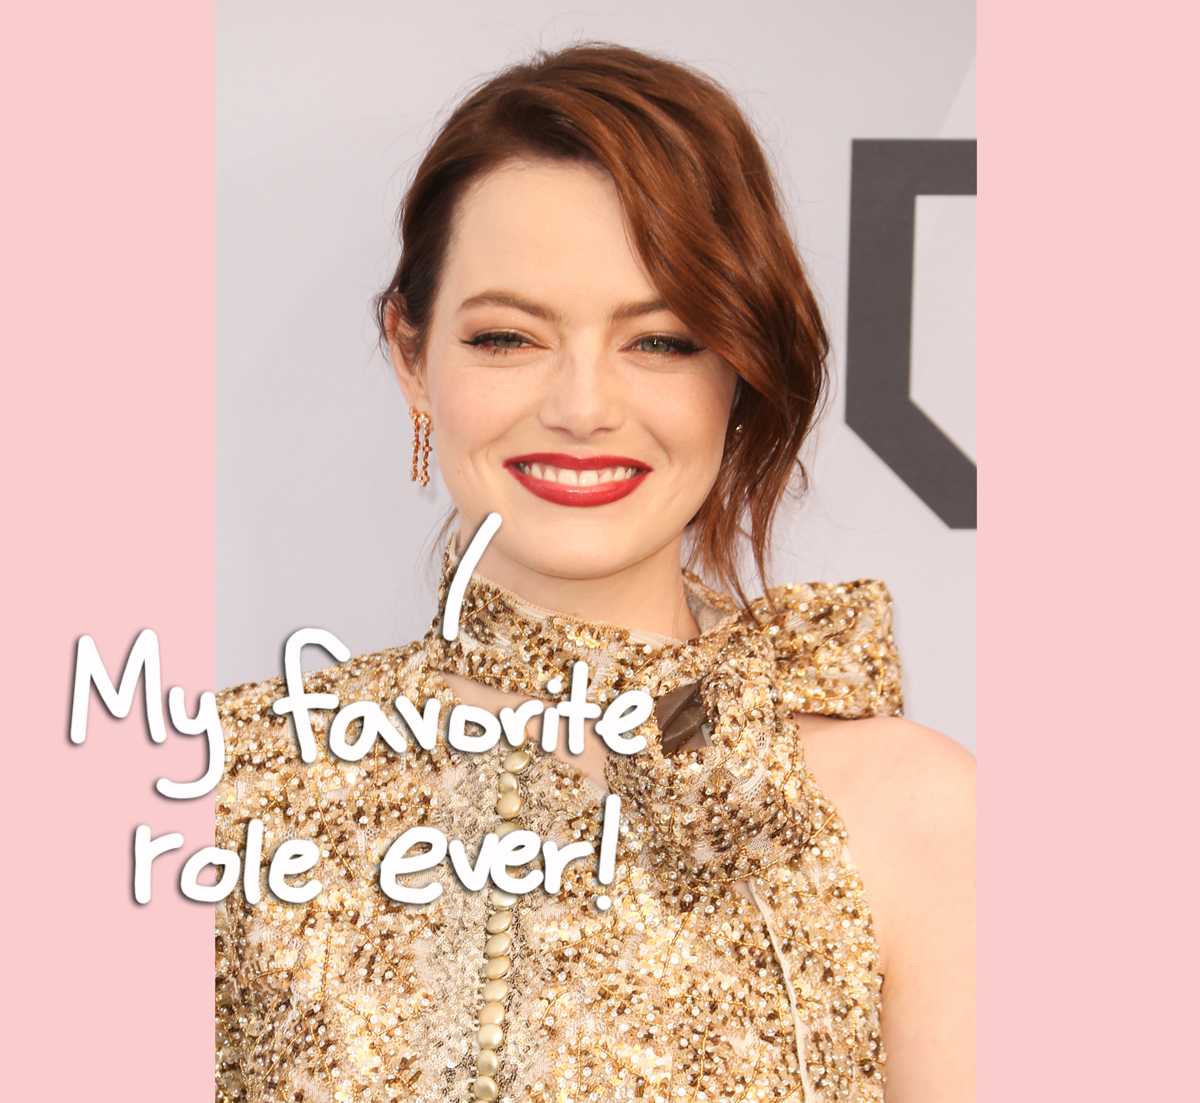 Emma Stone In 'New Dimension Of Bliss' After Welcoming First Child!